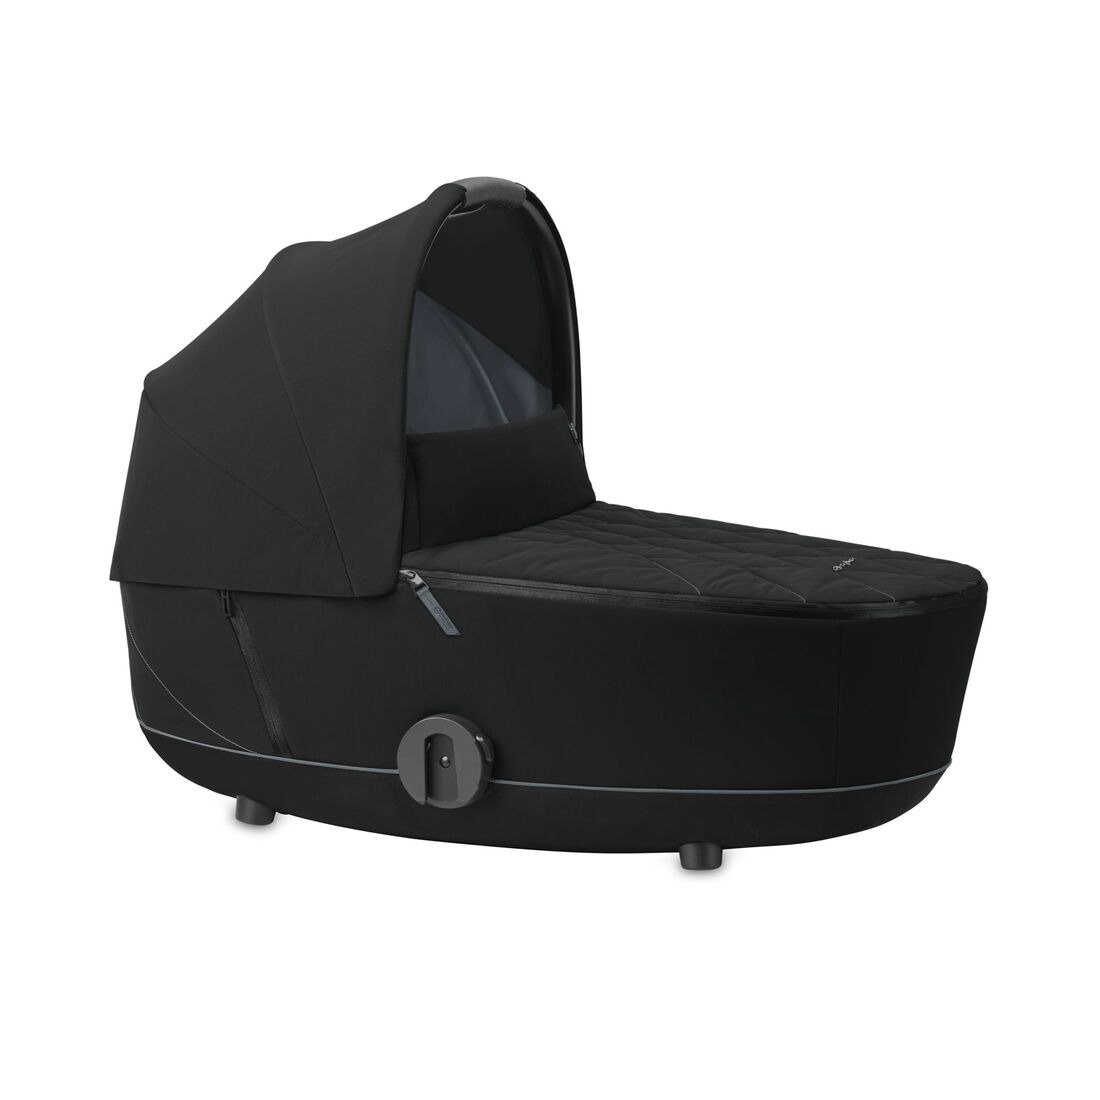 CYBEX Mios Lux Carry Cot - Deep Black in Deep Black large image number 1